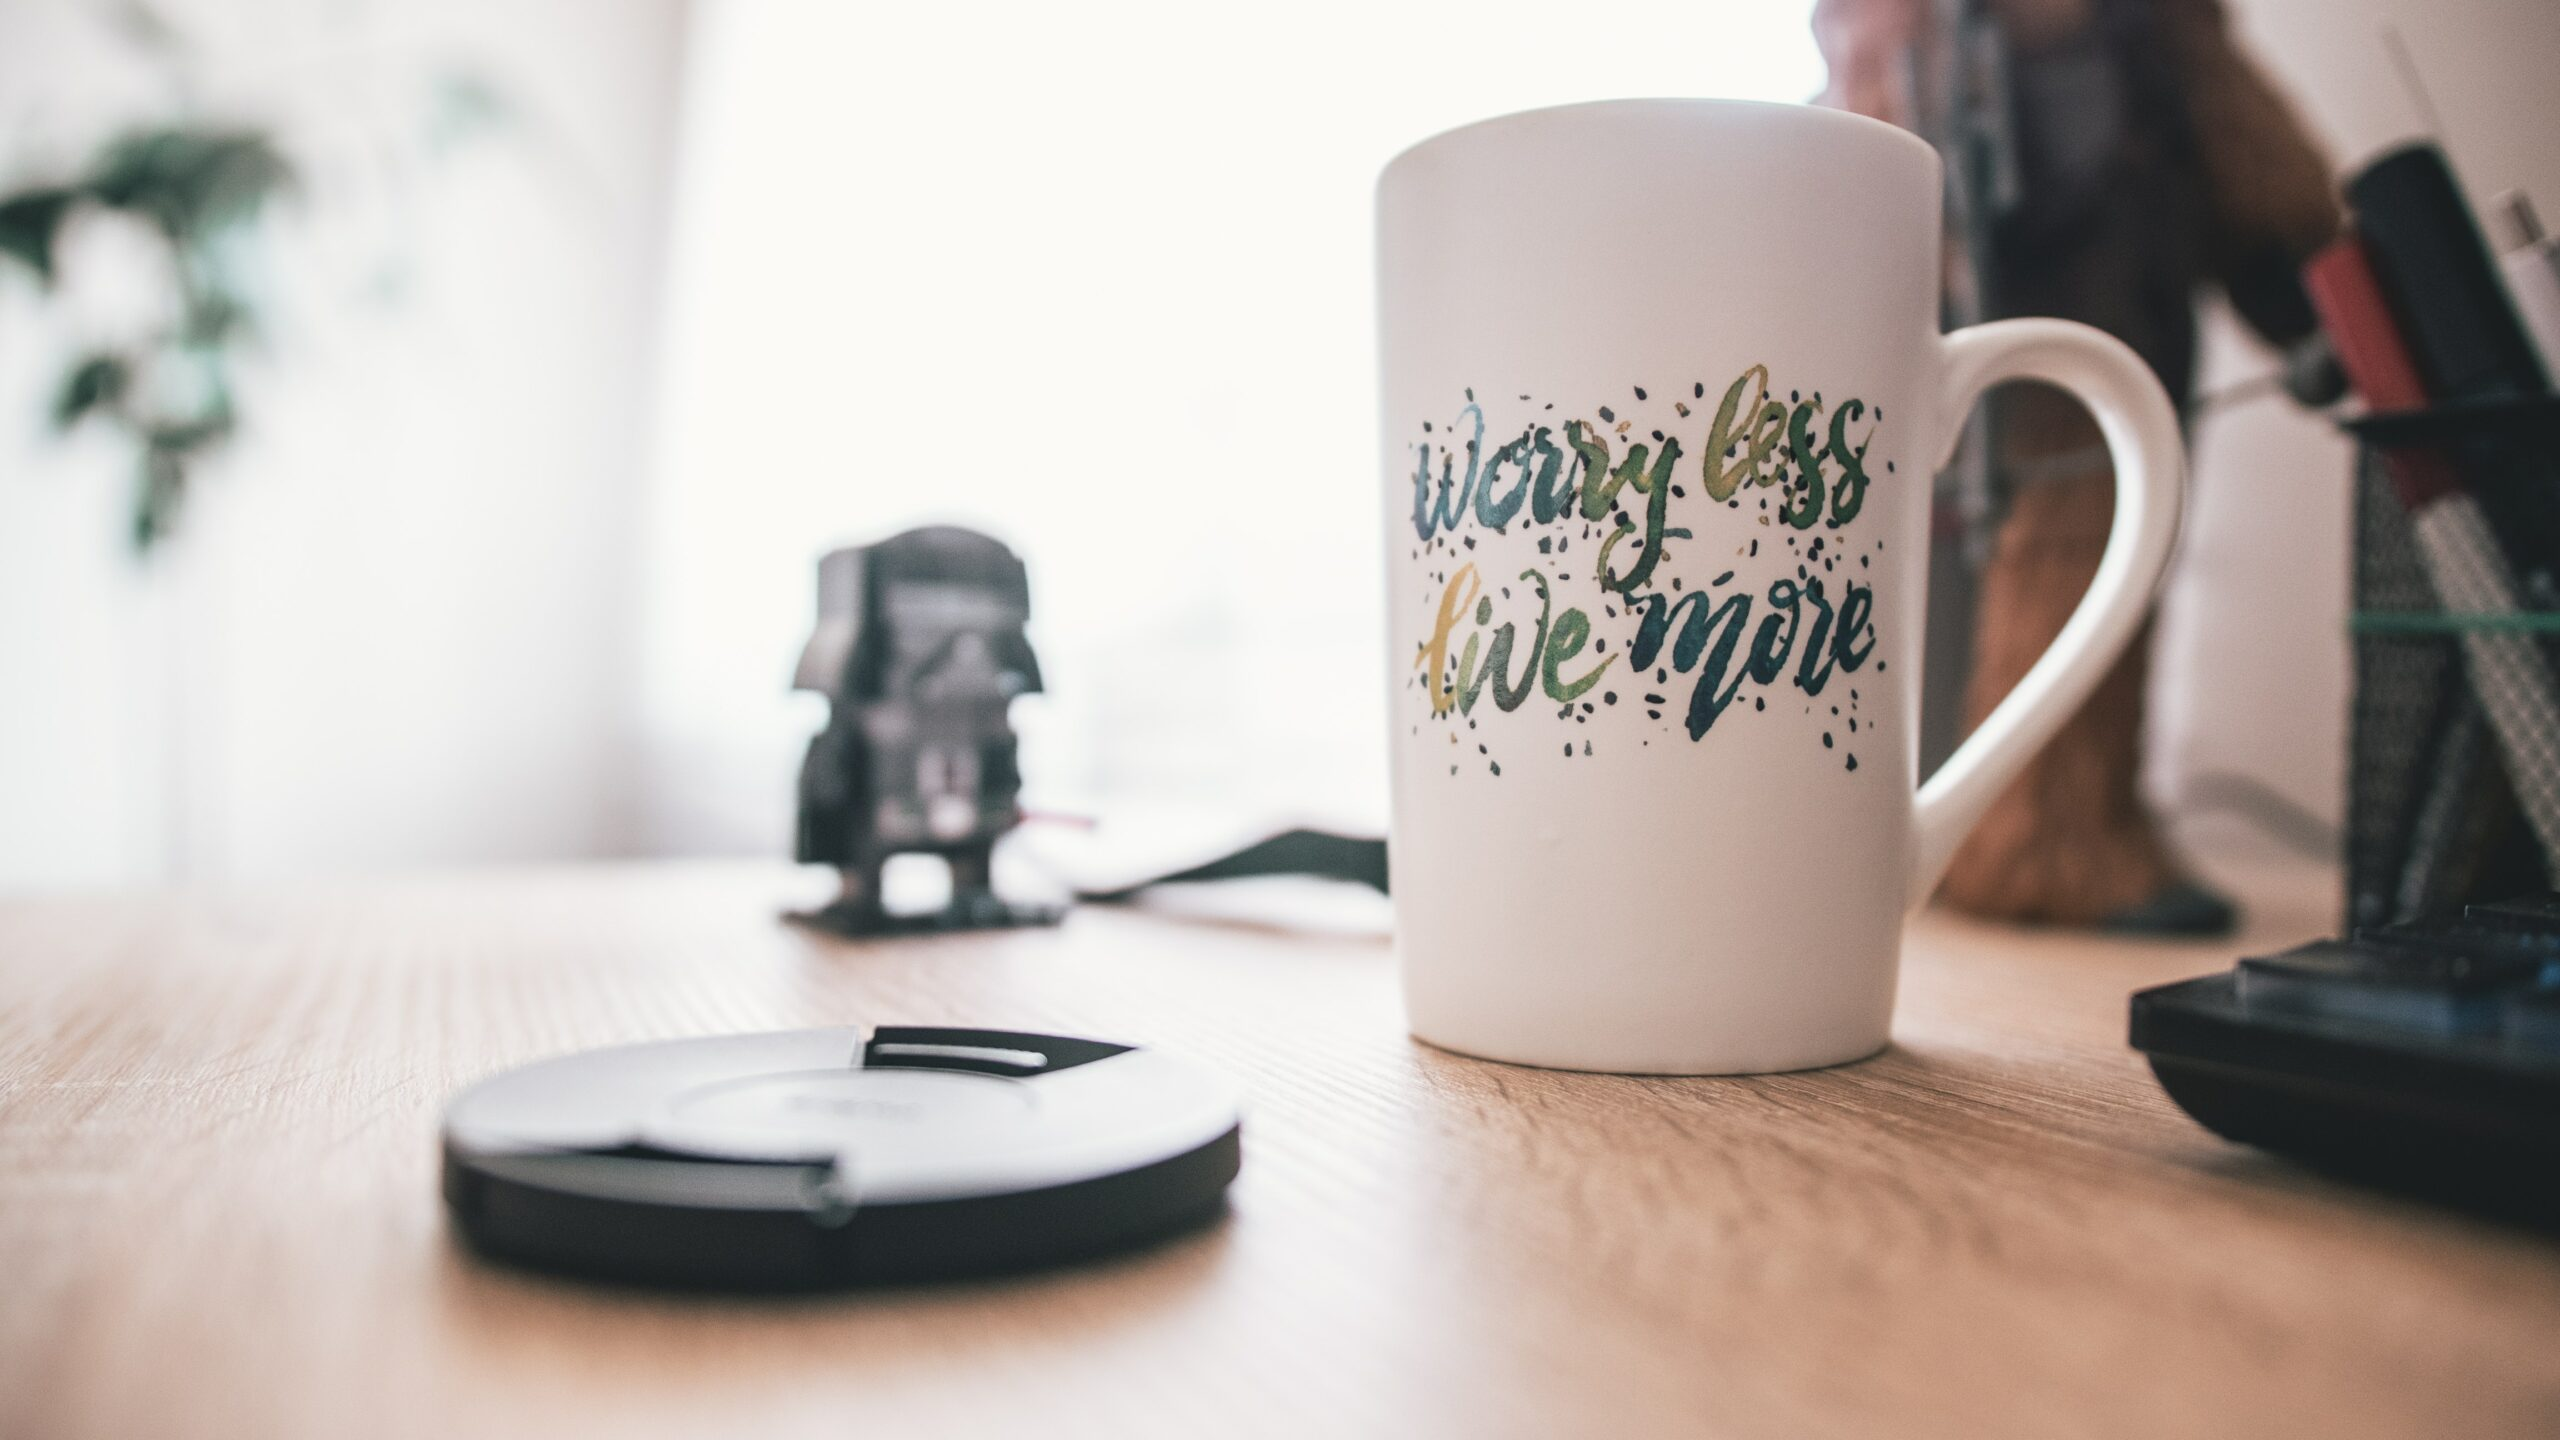 worry-less-live-more-mug-2332894